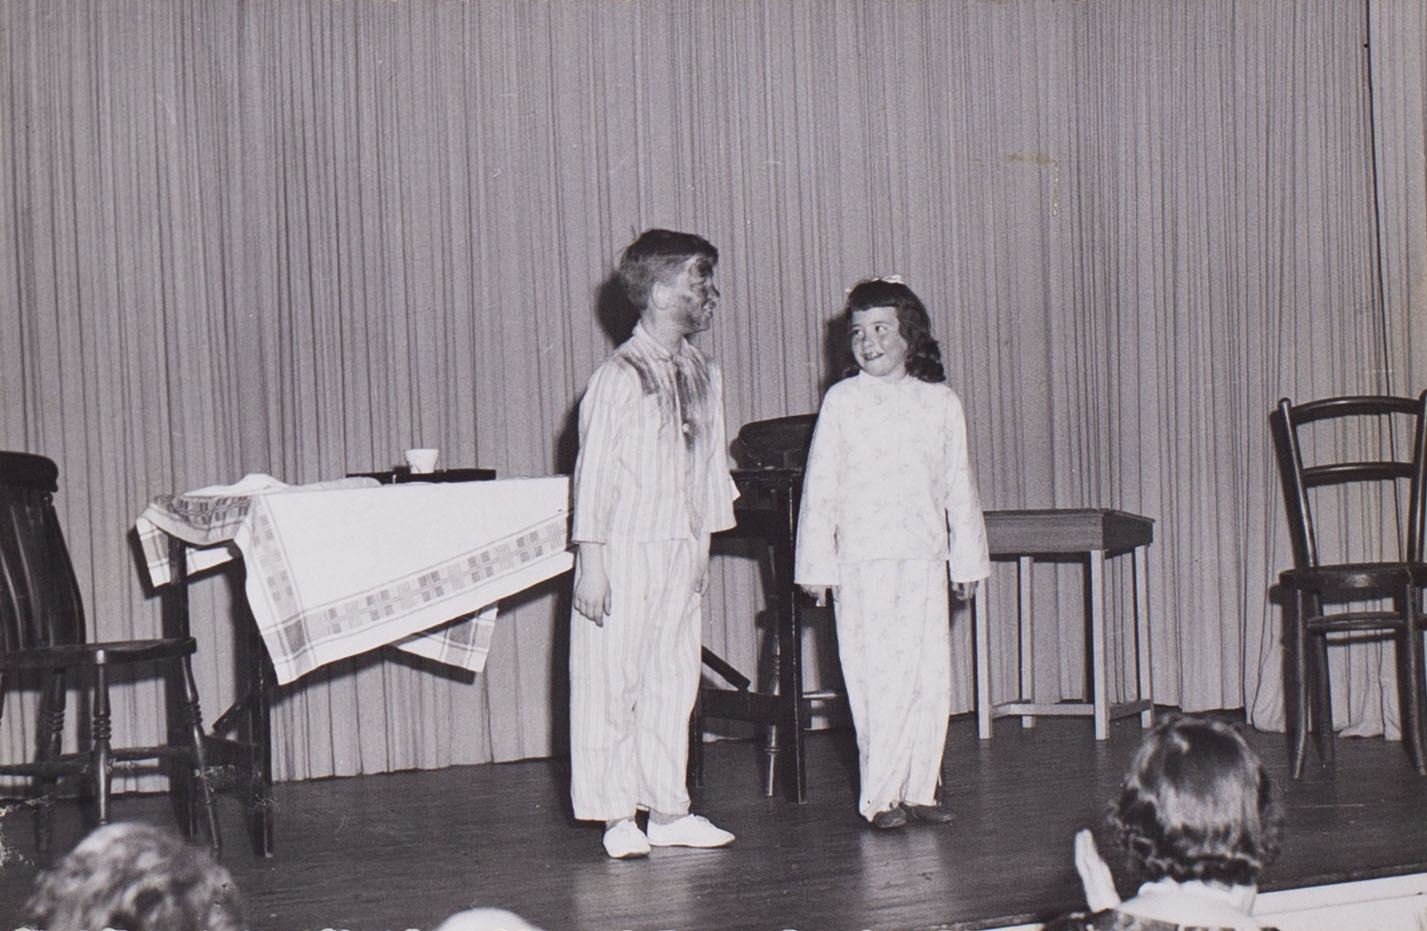 Photograph of children, Albert Heal and Gaynor Robbins in a play presented by Bishopsteignton Players